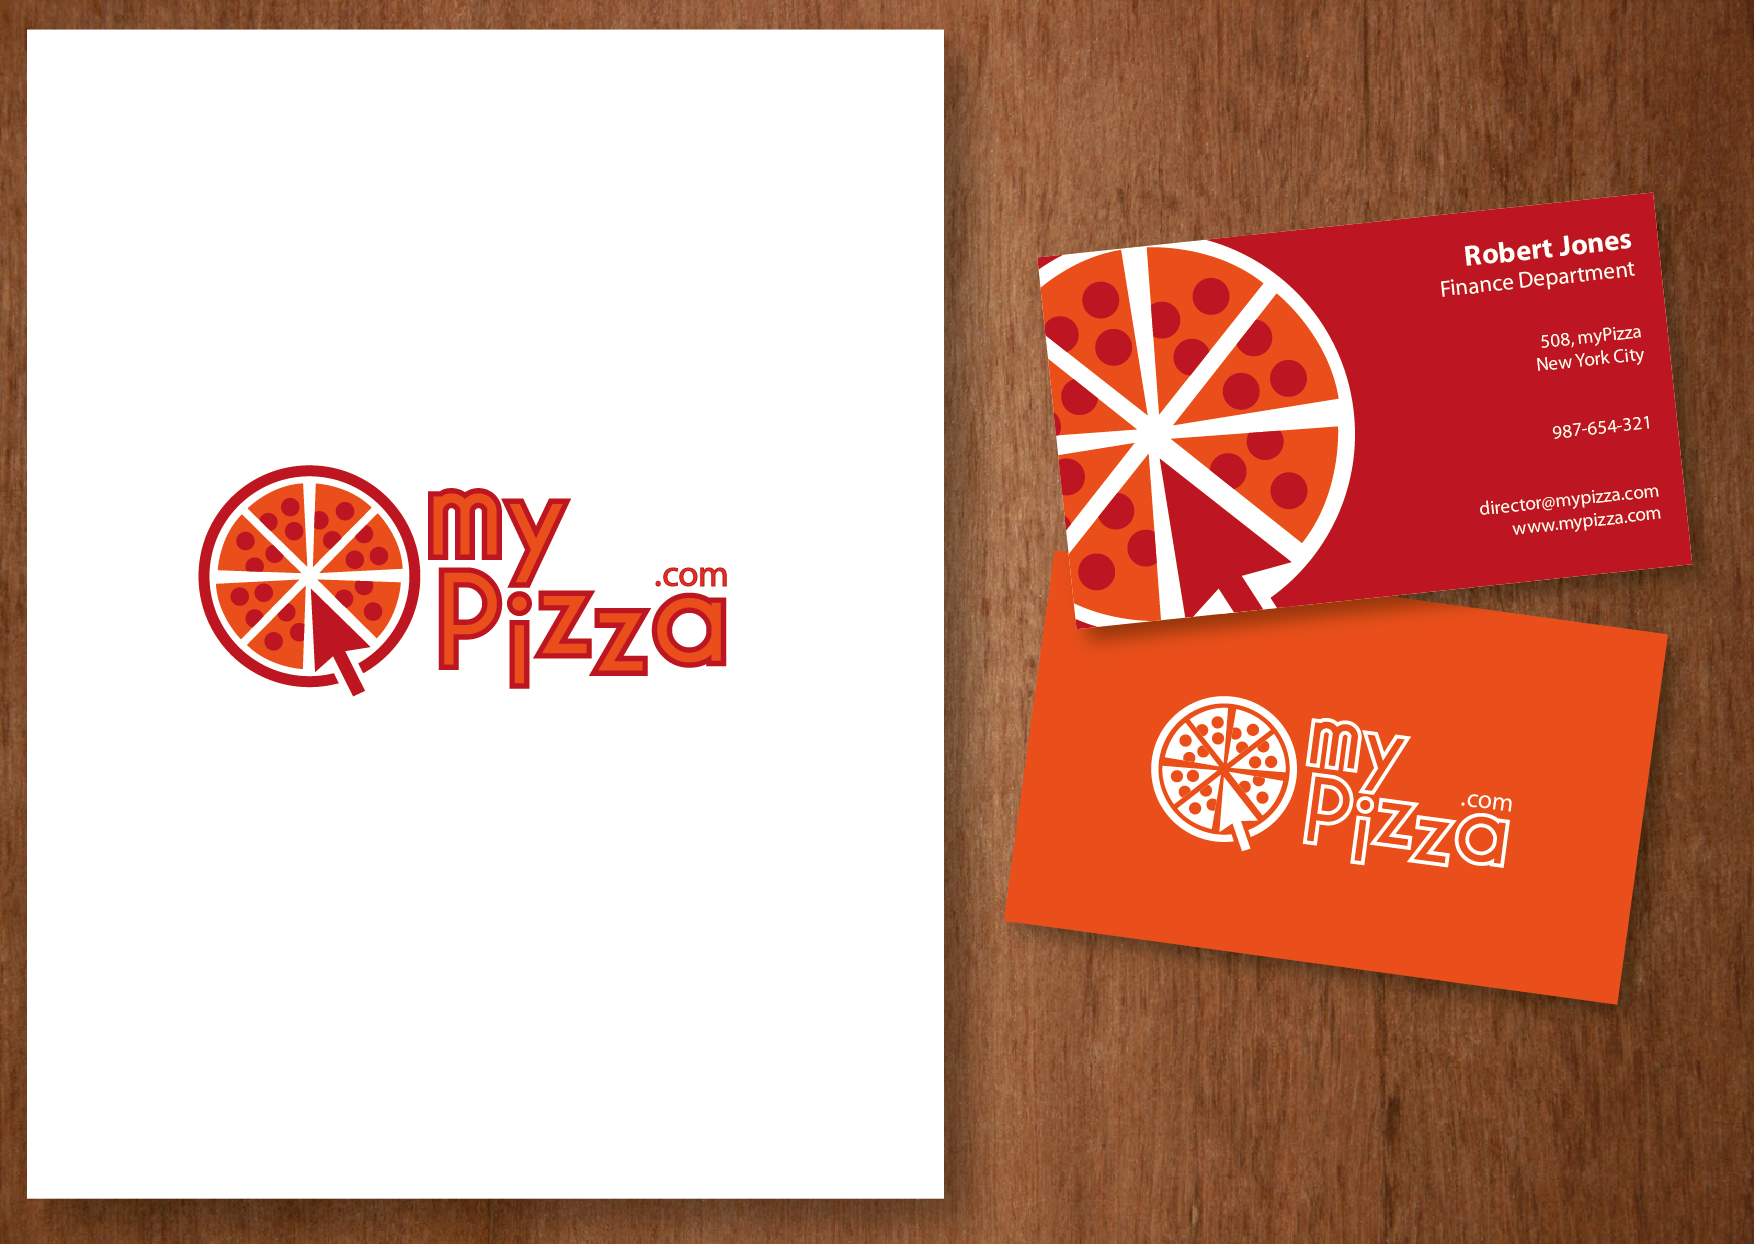 My Pizza - logo design, print and business cards | Digital Marketing ...